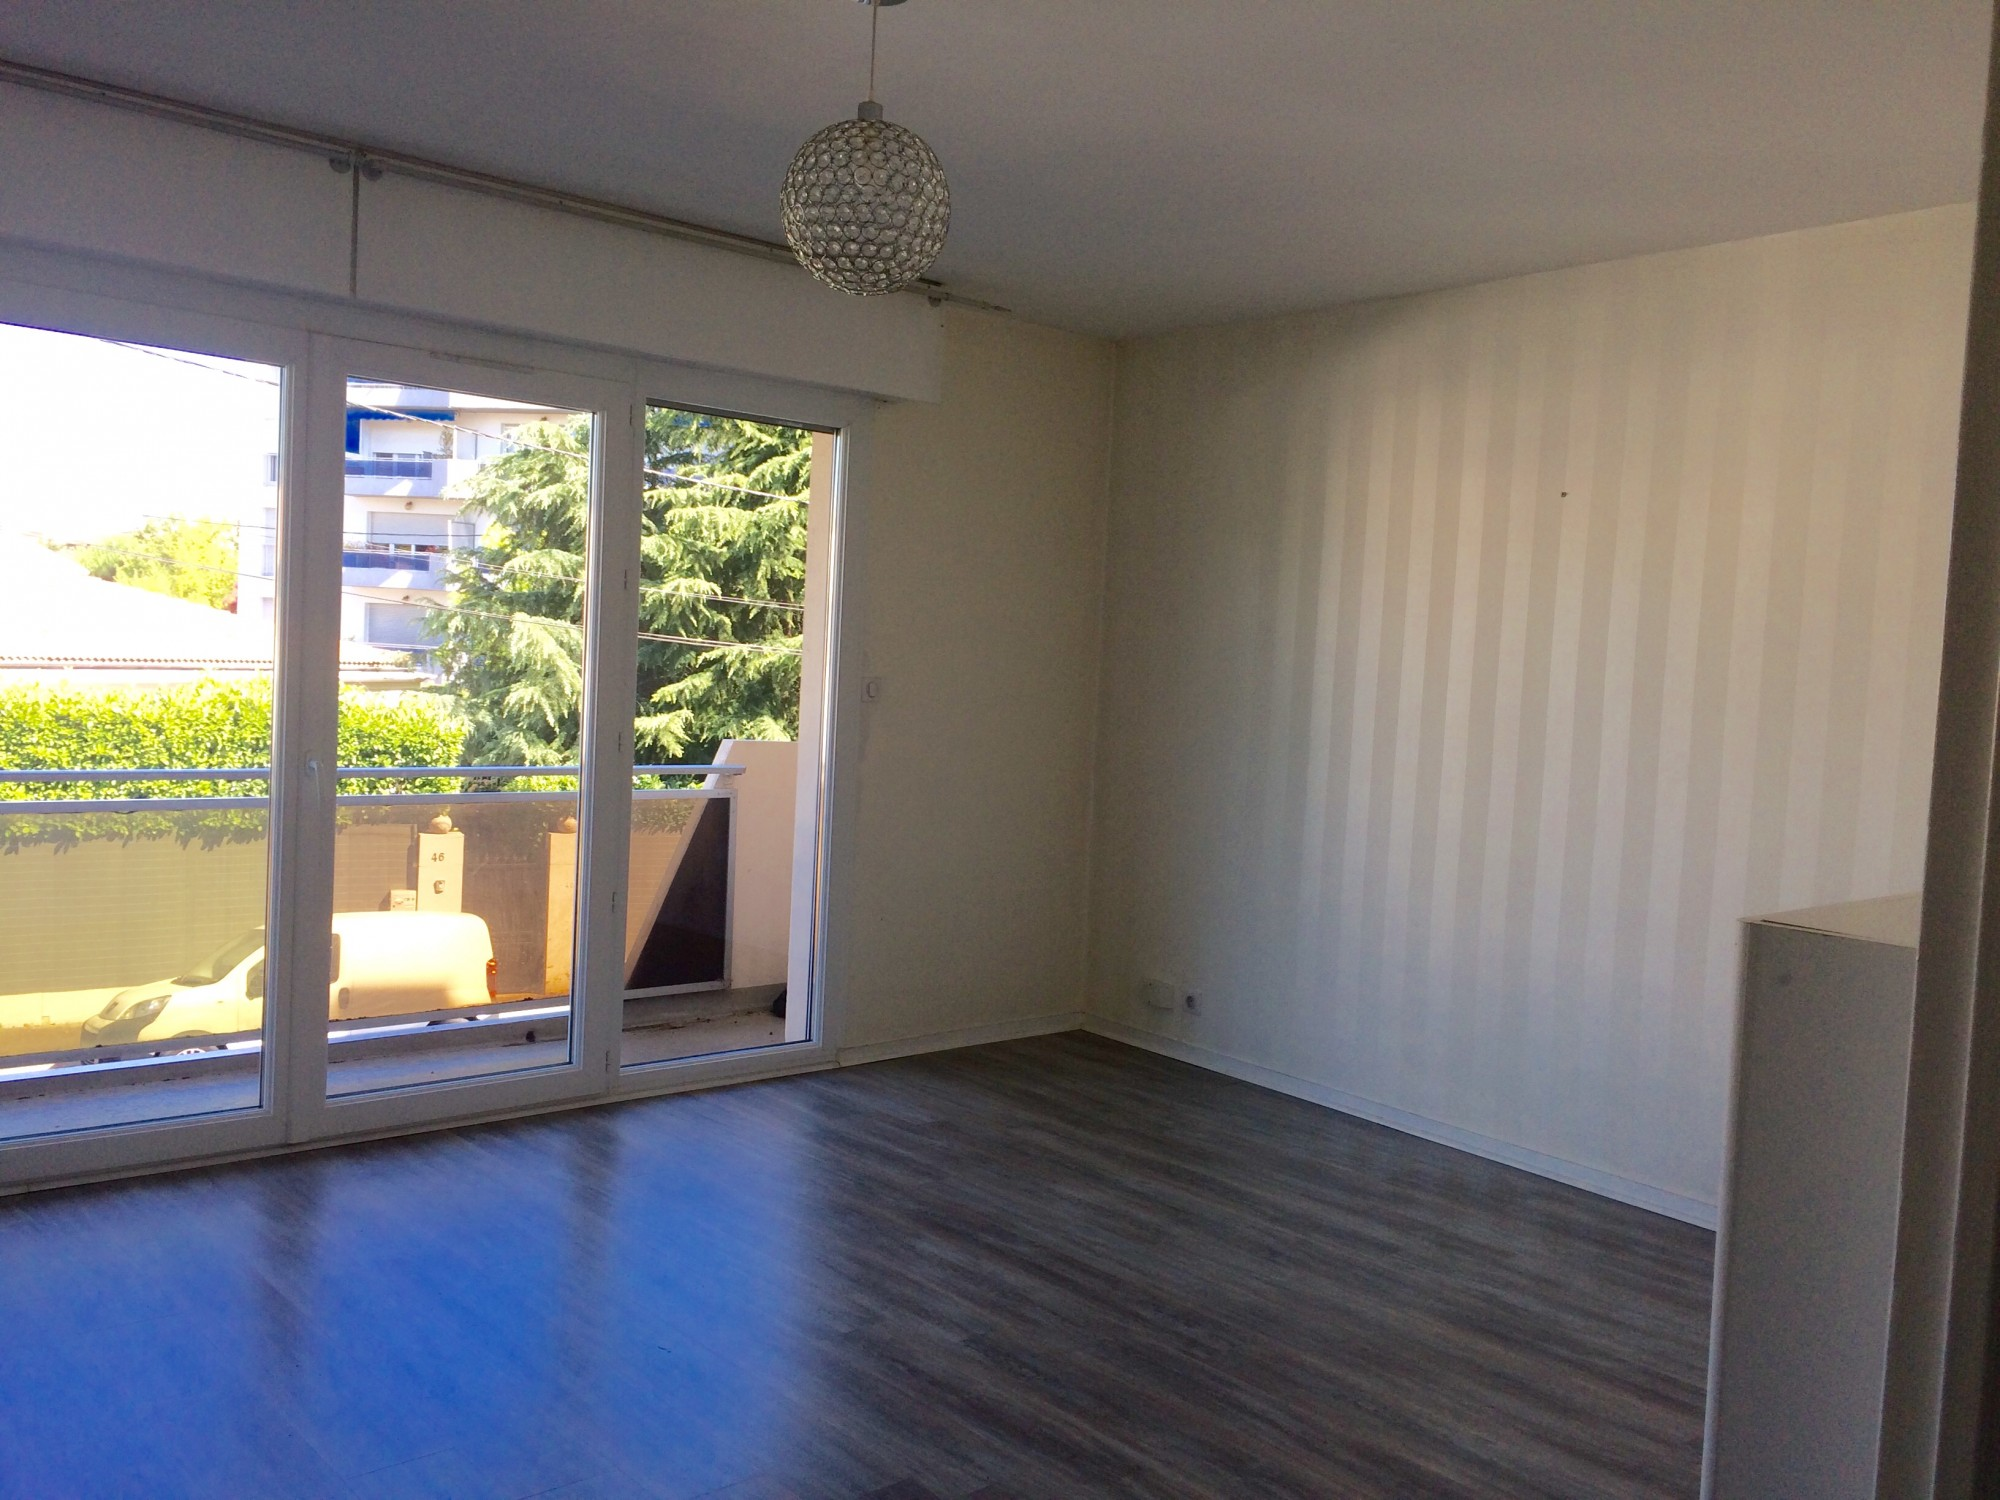 Location appartement t2 t2 f2 bordeaux caud ran bru for Location appartement bordeaux oralia